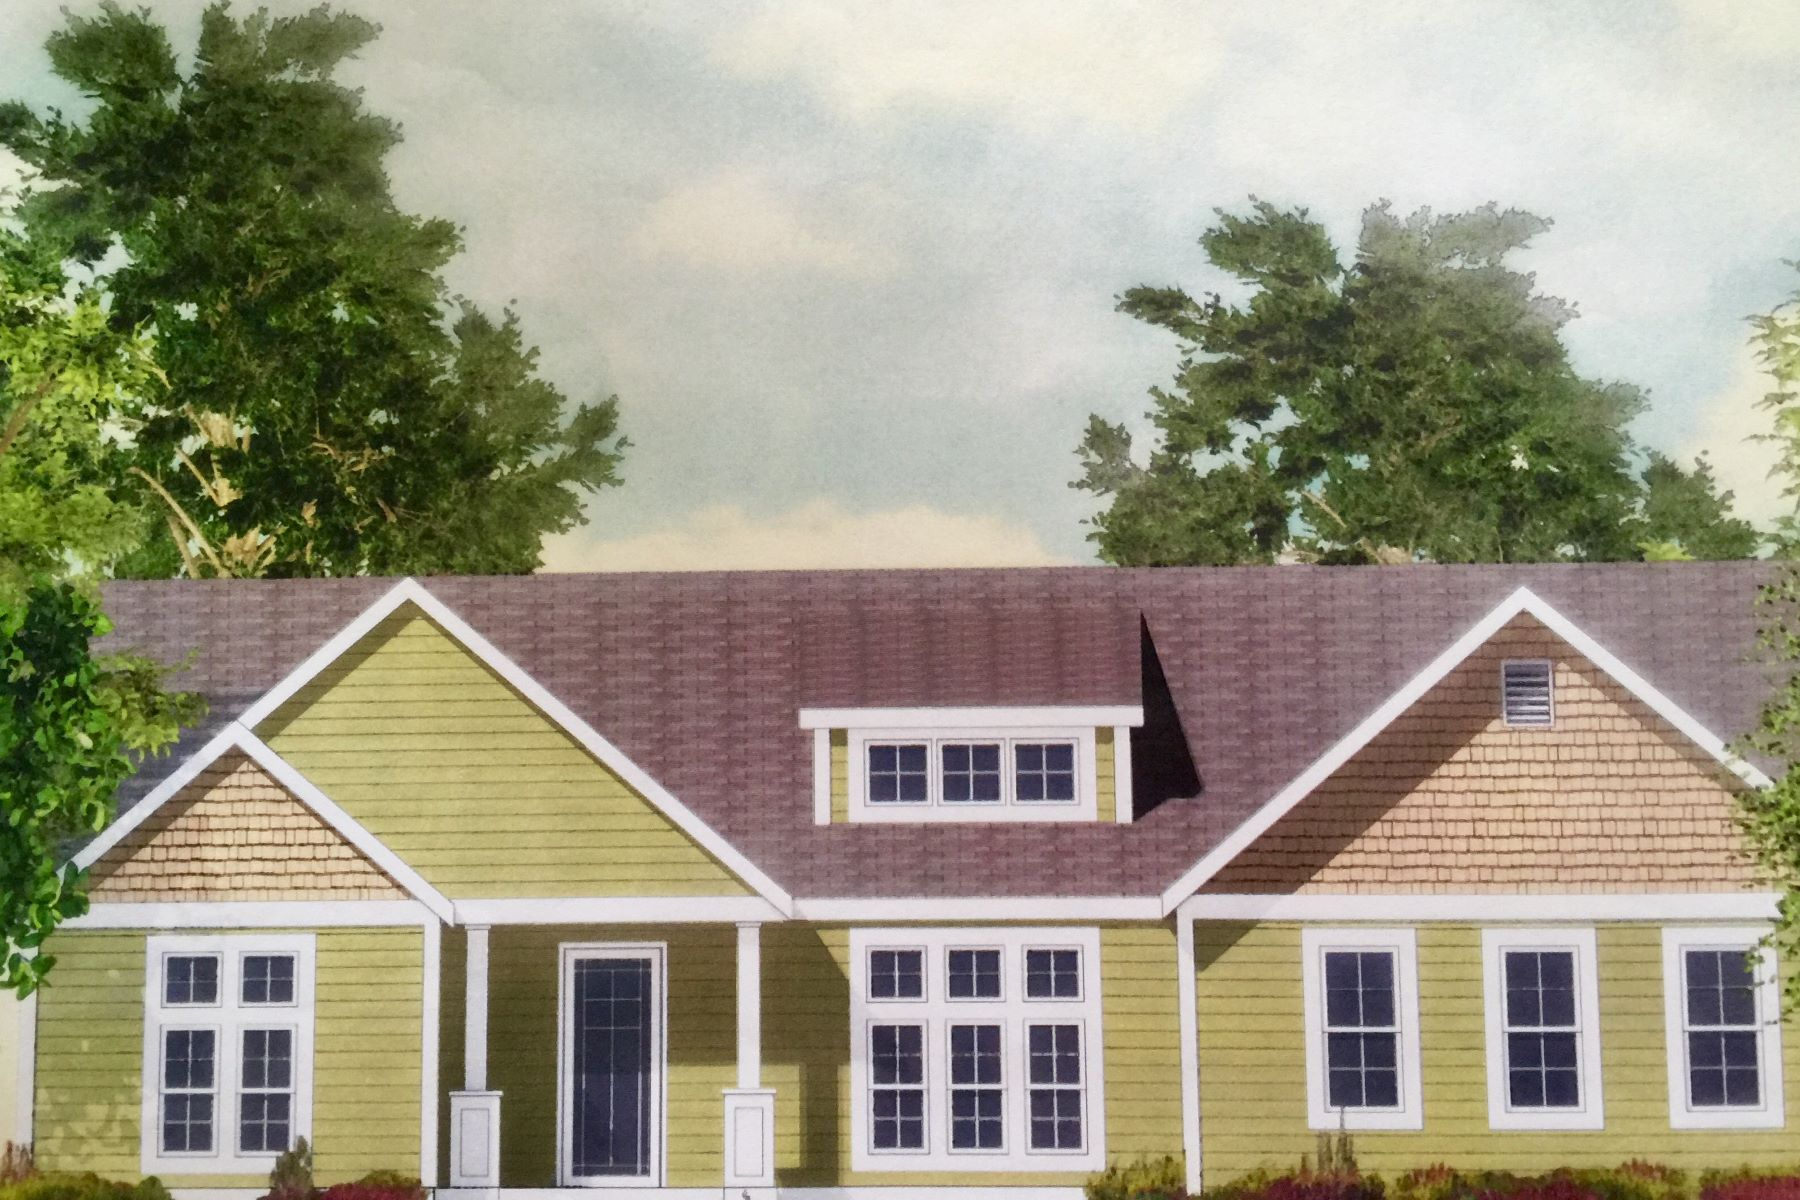 Casa Unifamiliar por un Venta en Autumn Ridge Development 5 Autumn Ridge Westbrook, Connecticut, 06498 Estados Unidos